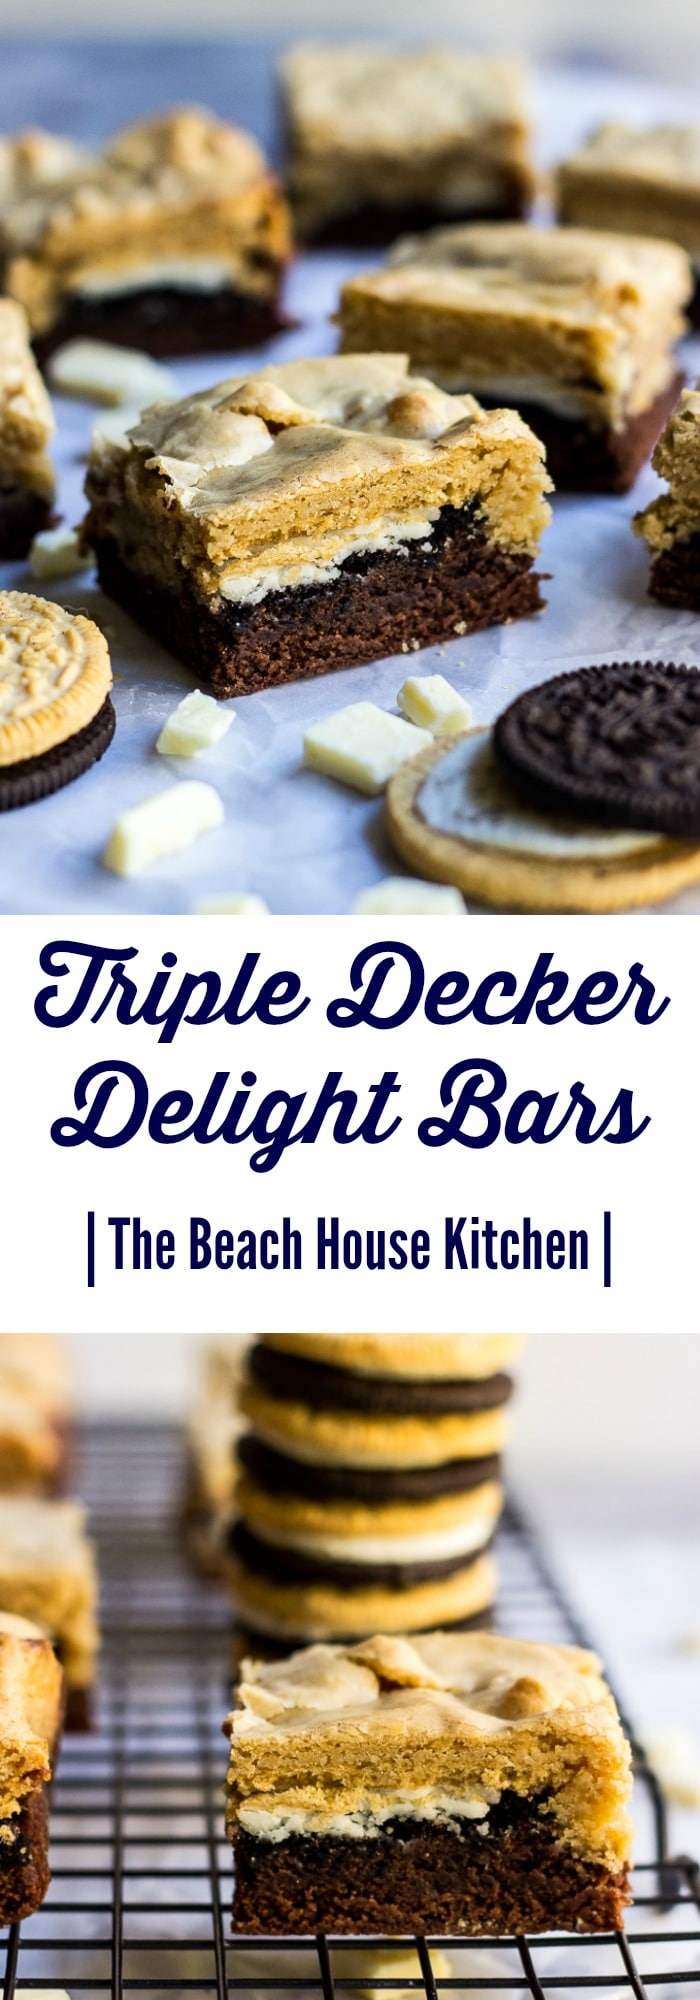 Triple Decker Delight Bars